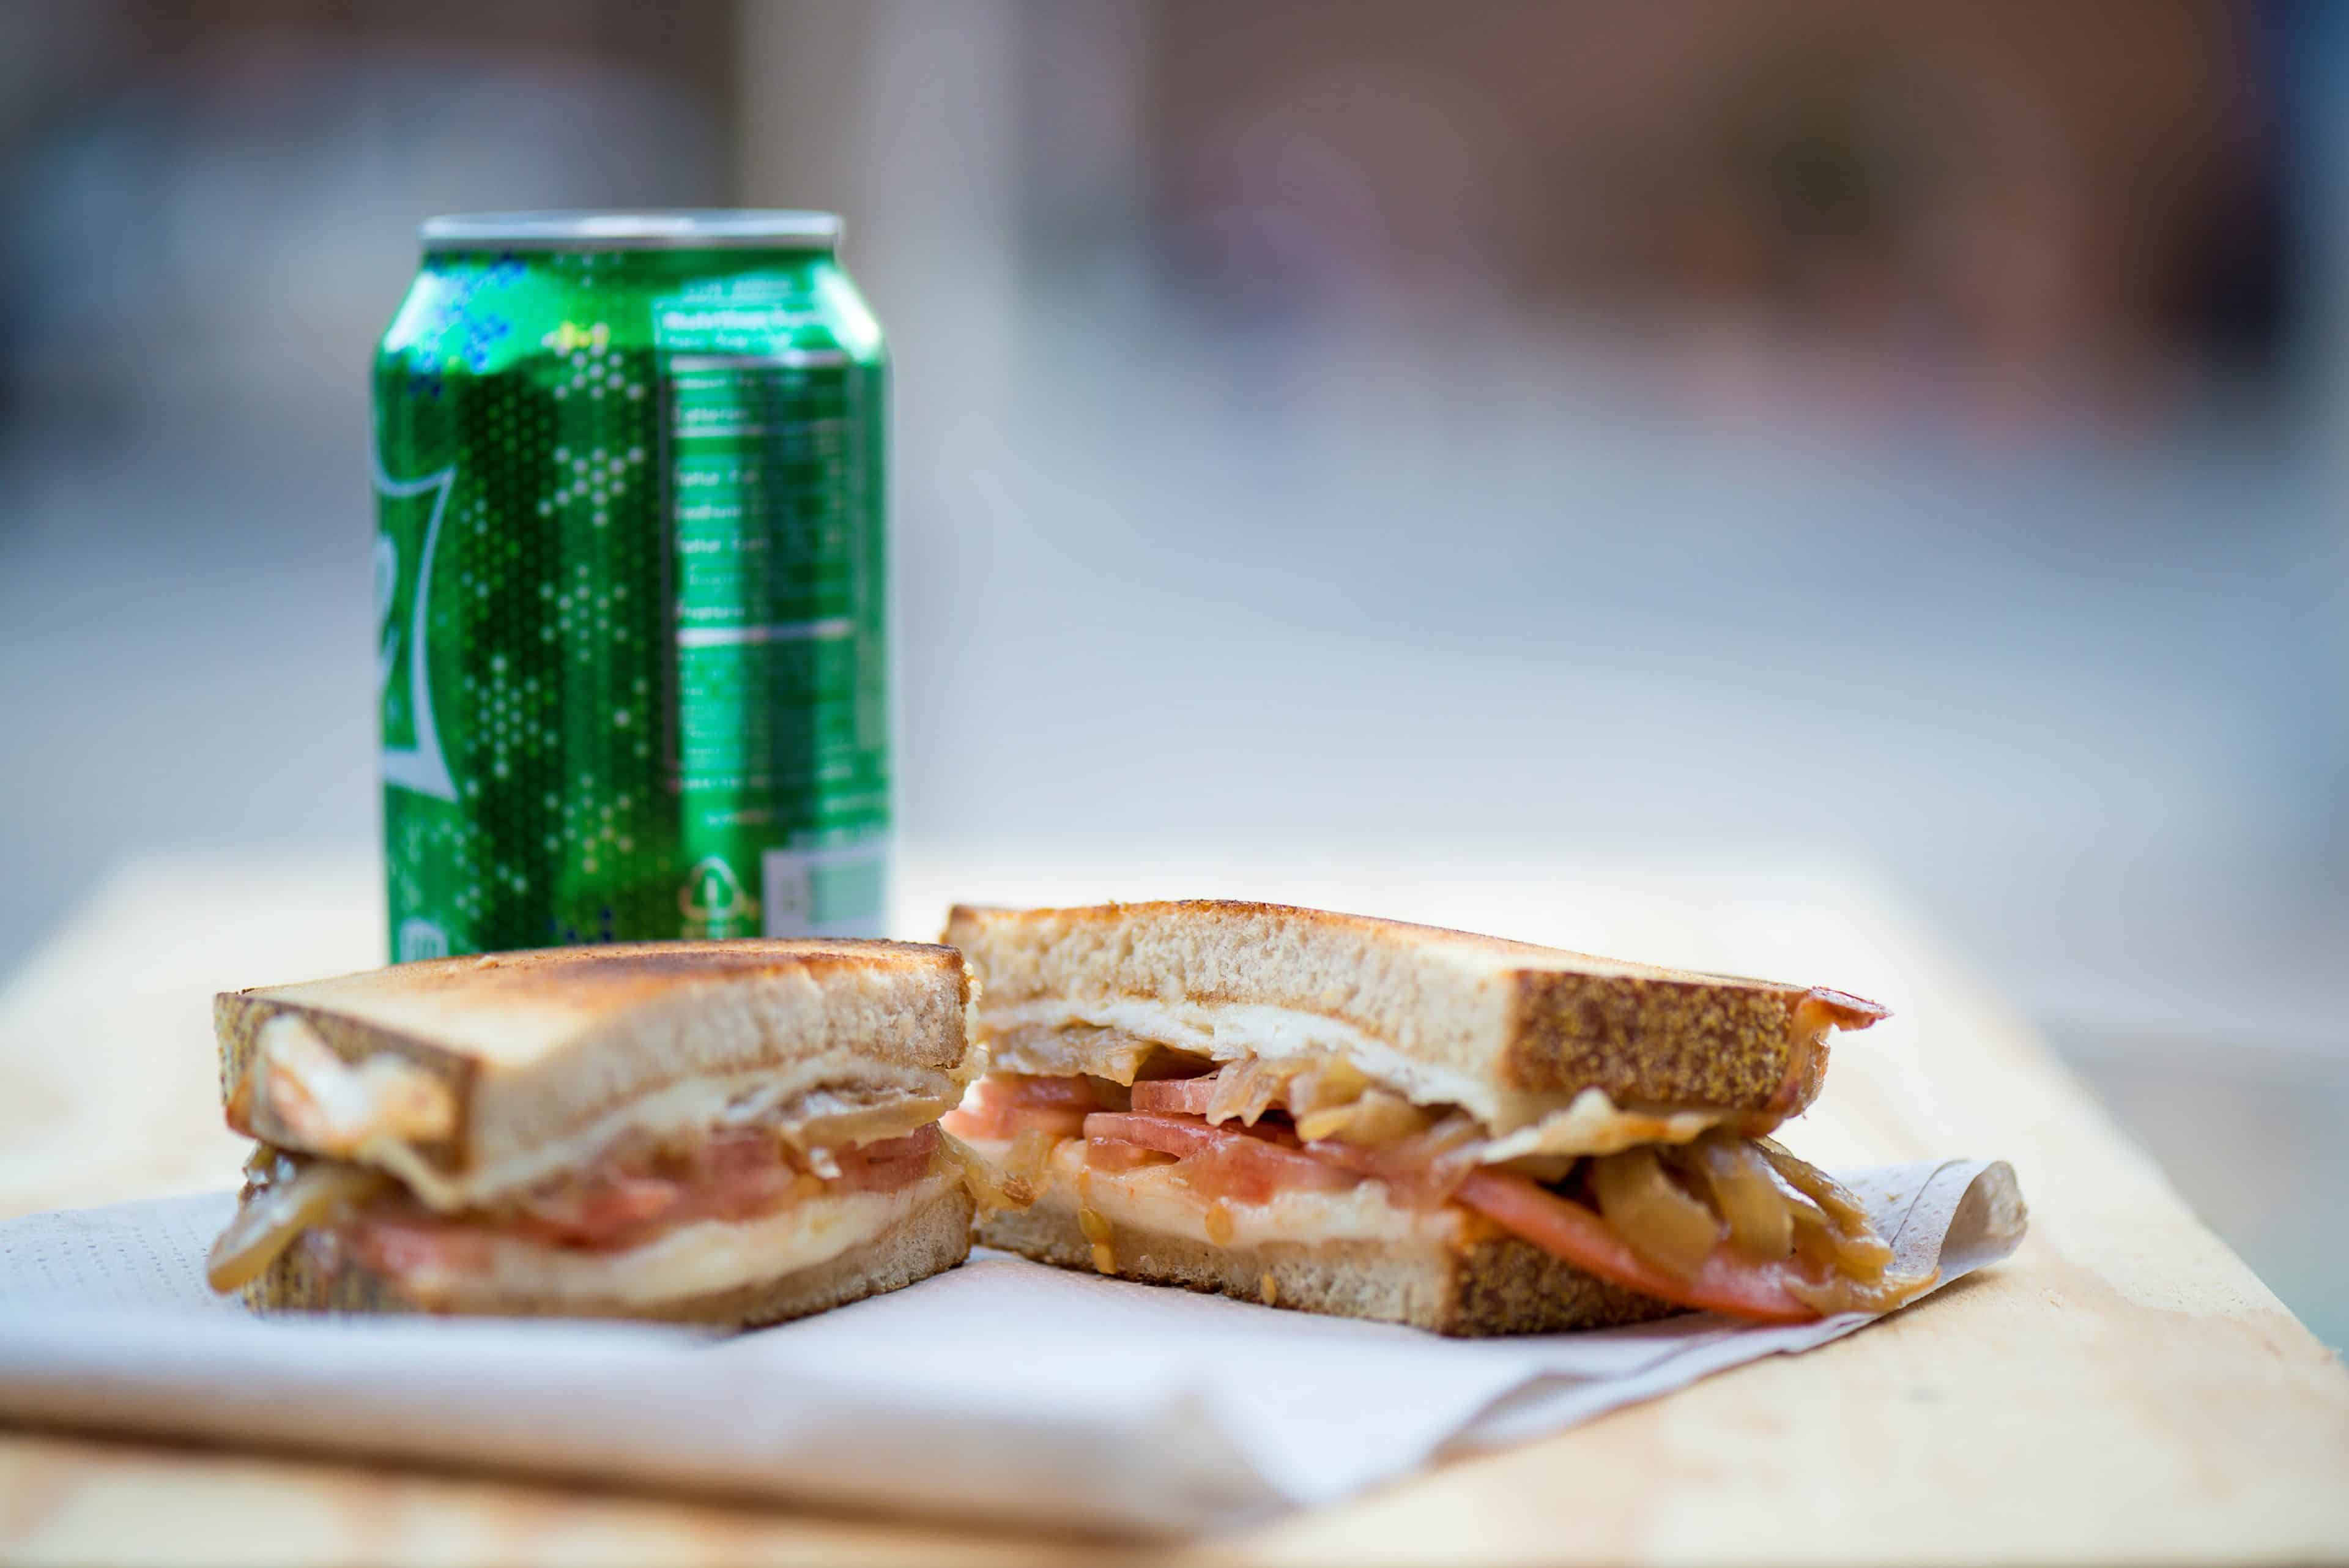 Grilled sandwich and a soda